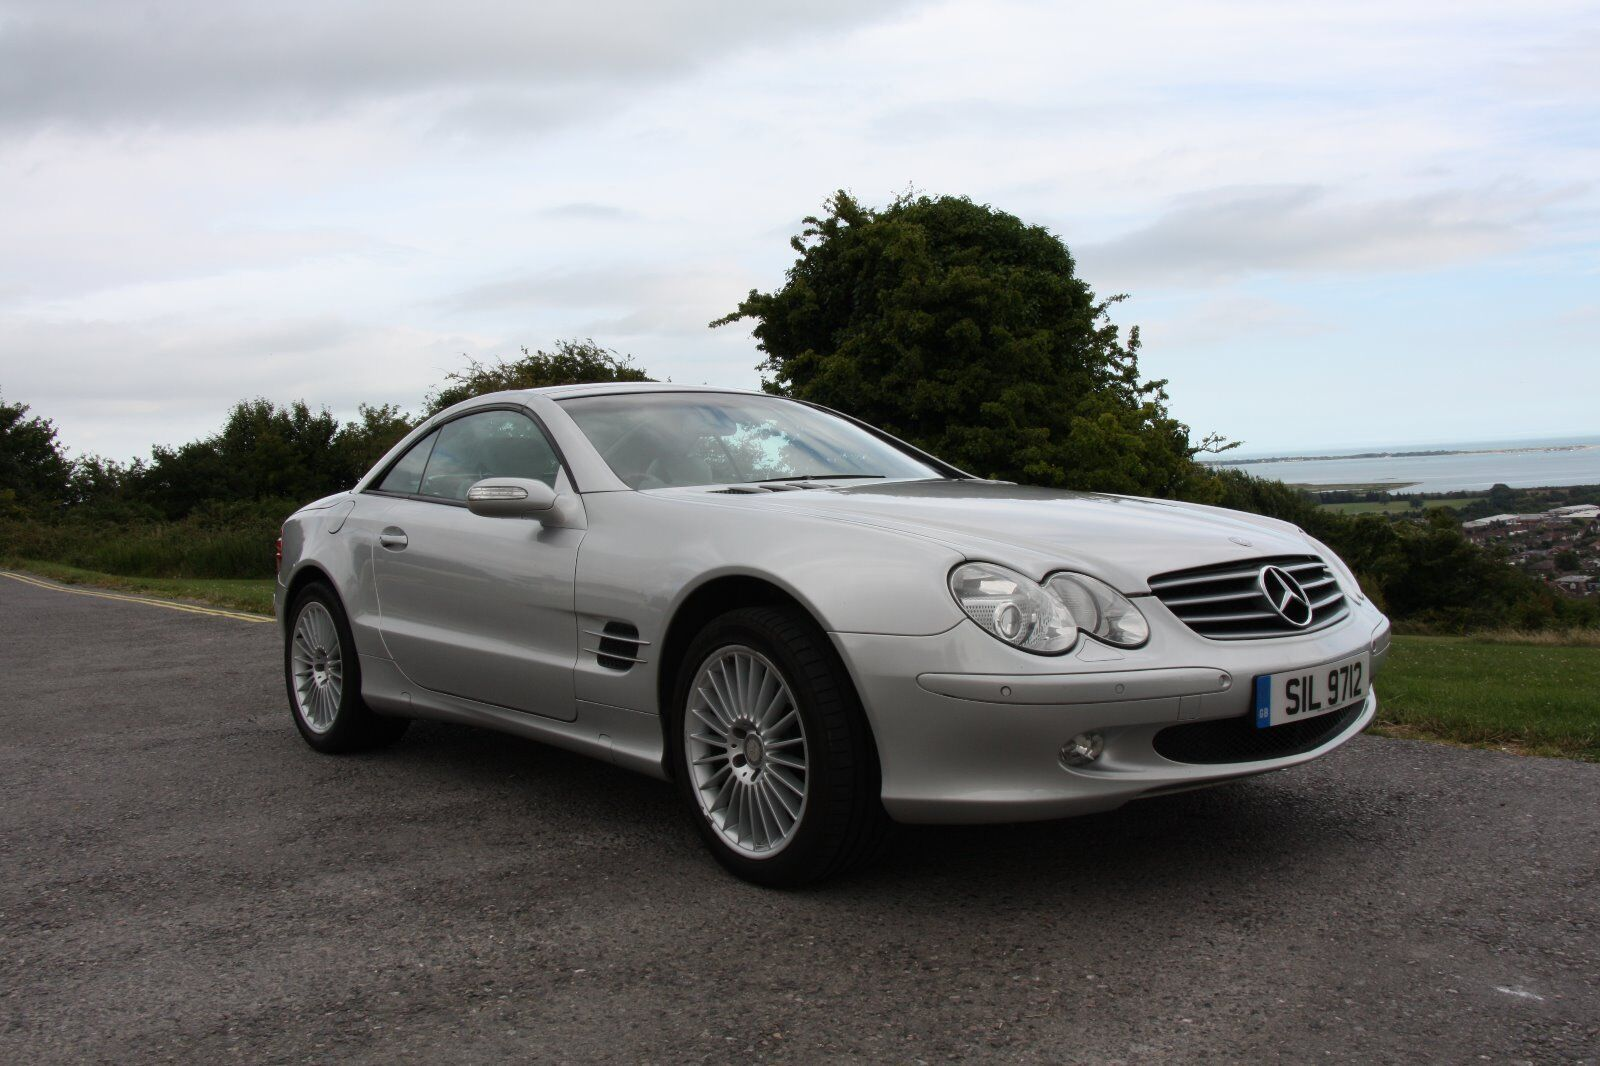 mercedes sl 350 full service history 5 picclick uk. Black Bedroom Furniture Sets. Home Design Ideas